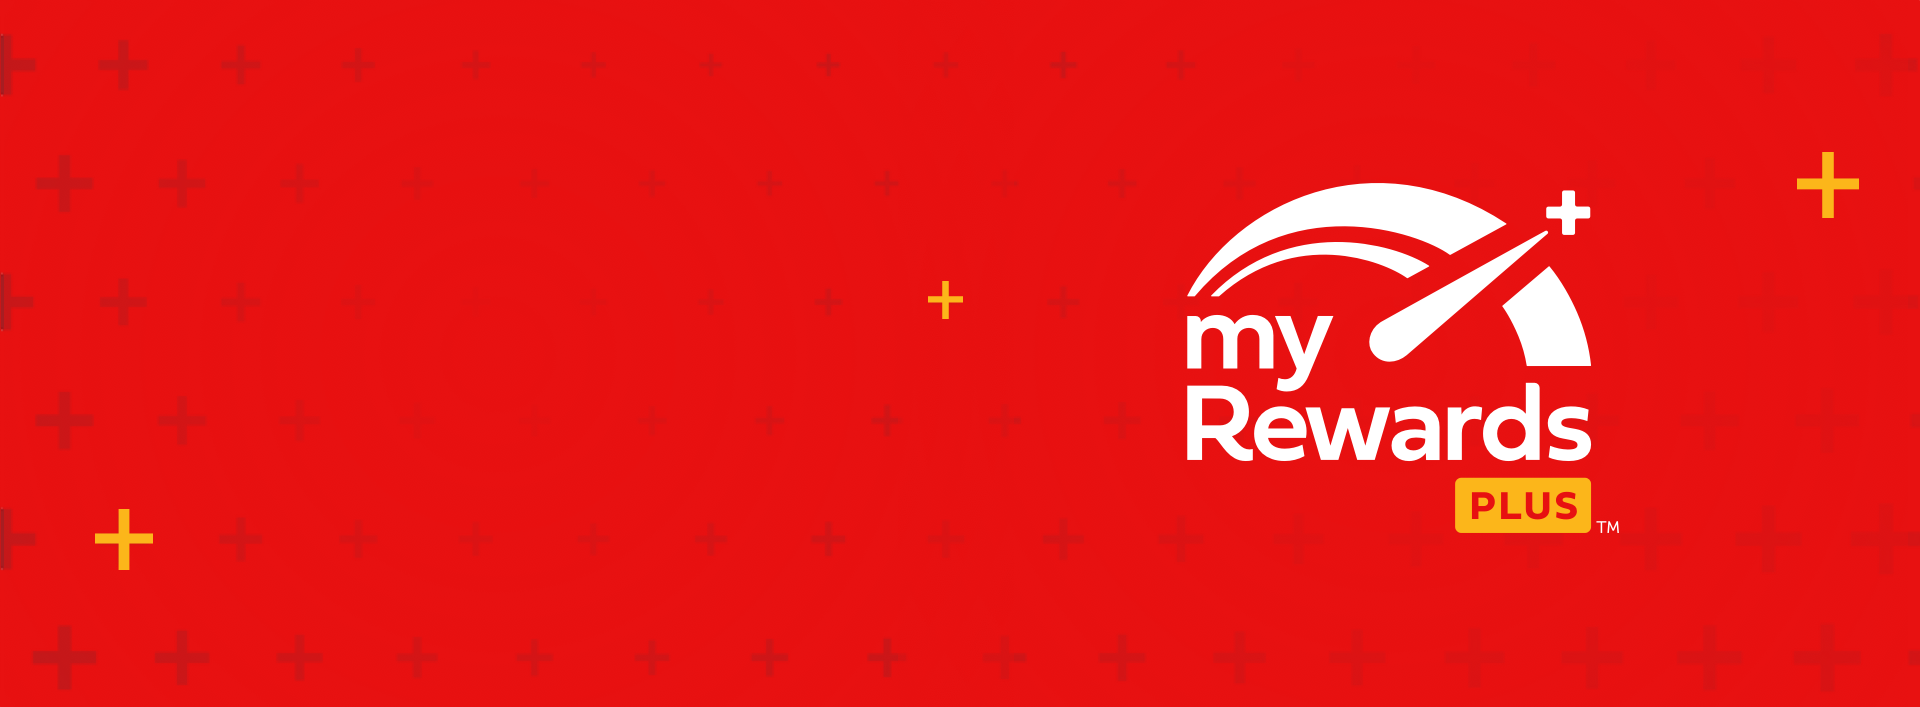 myr-launch_desktop_-1x